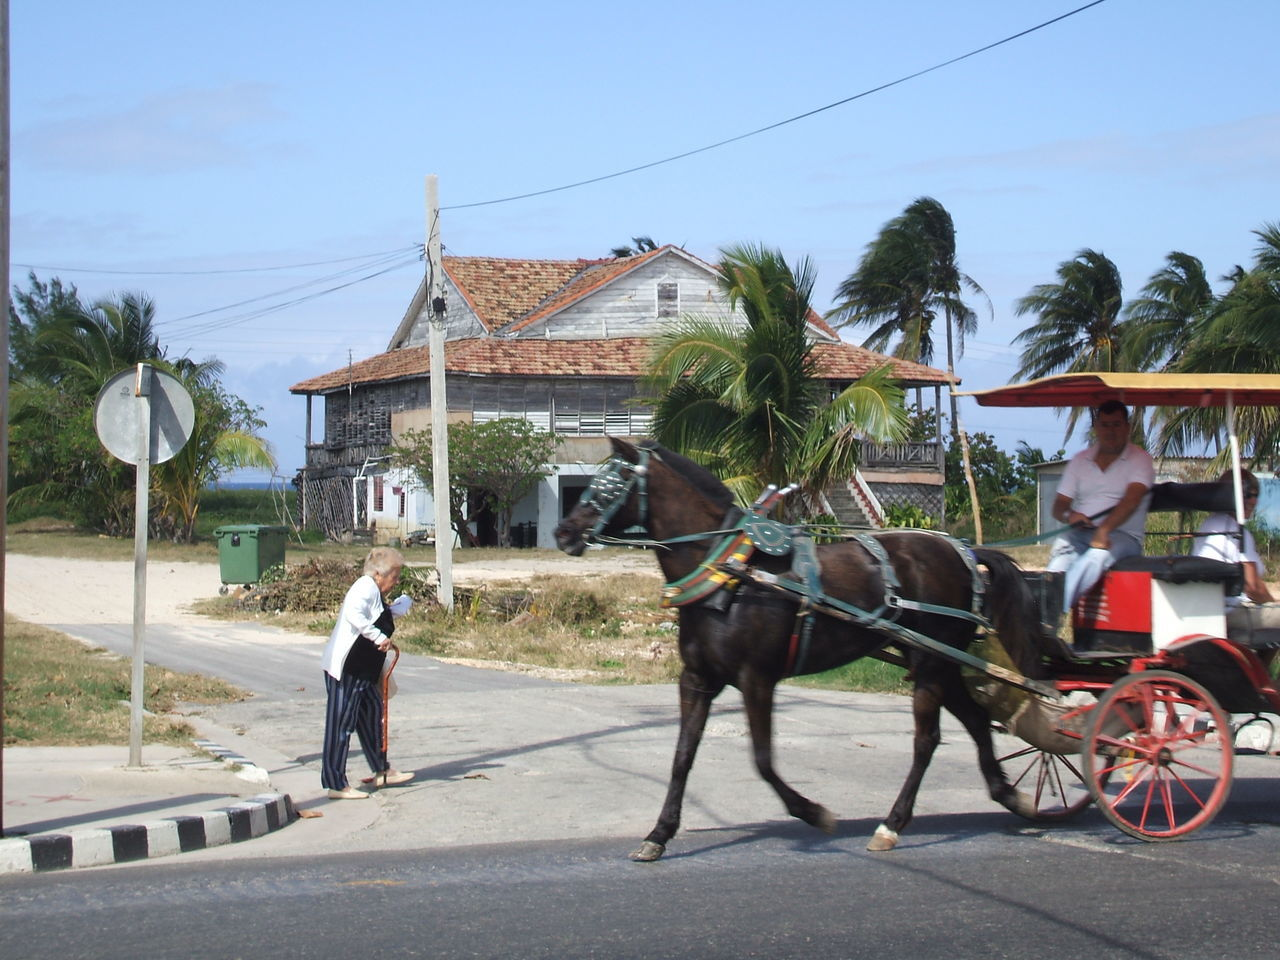 Fast-paced. Horse Horse Cart Horse-drawn Carriage Movement Neighborhood Map Old Person Old Person Walking With Cane Outdoors Palms Real People Veradero Veradero, Cuba